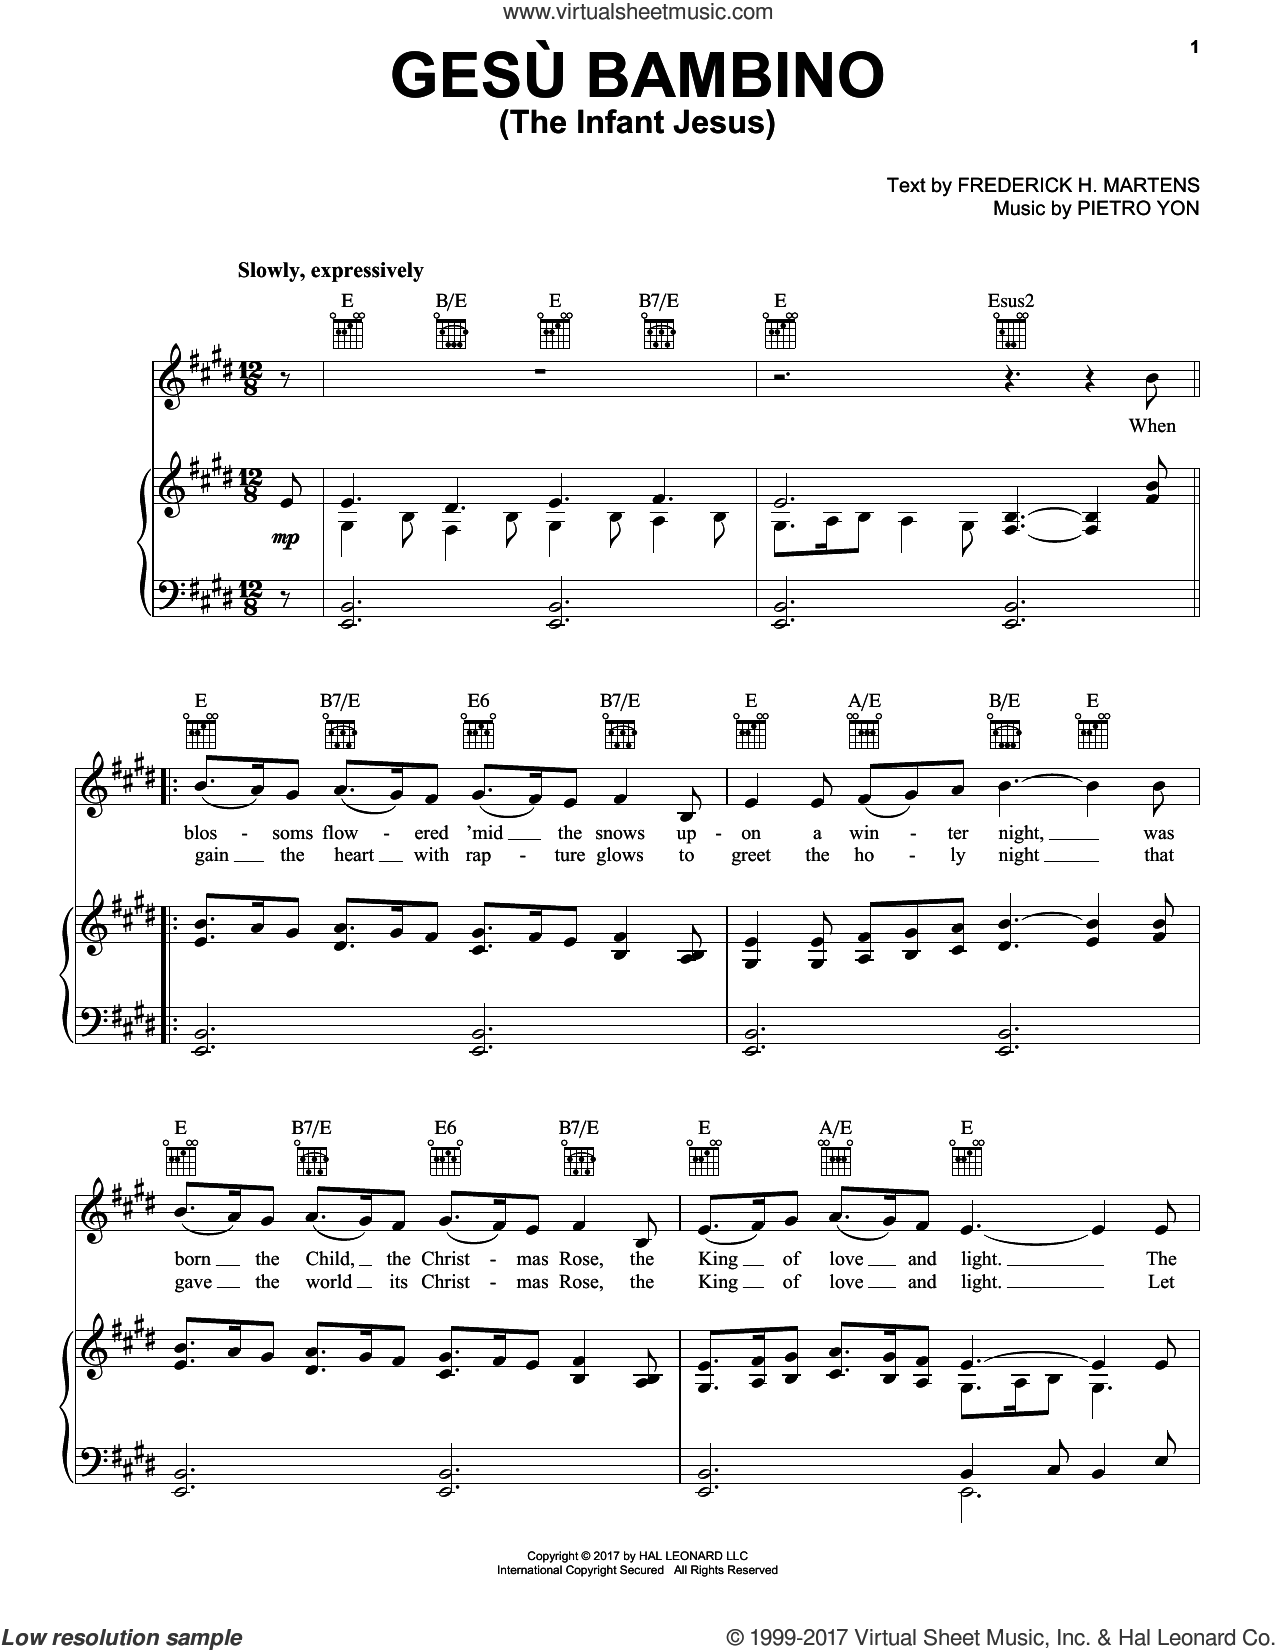 Gesu Bambino (The Infant Jesus) sheet music for voice, piano or guitar by Frederick H. Martens and Pietro Yon, intermediate. Score Image Preview.